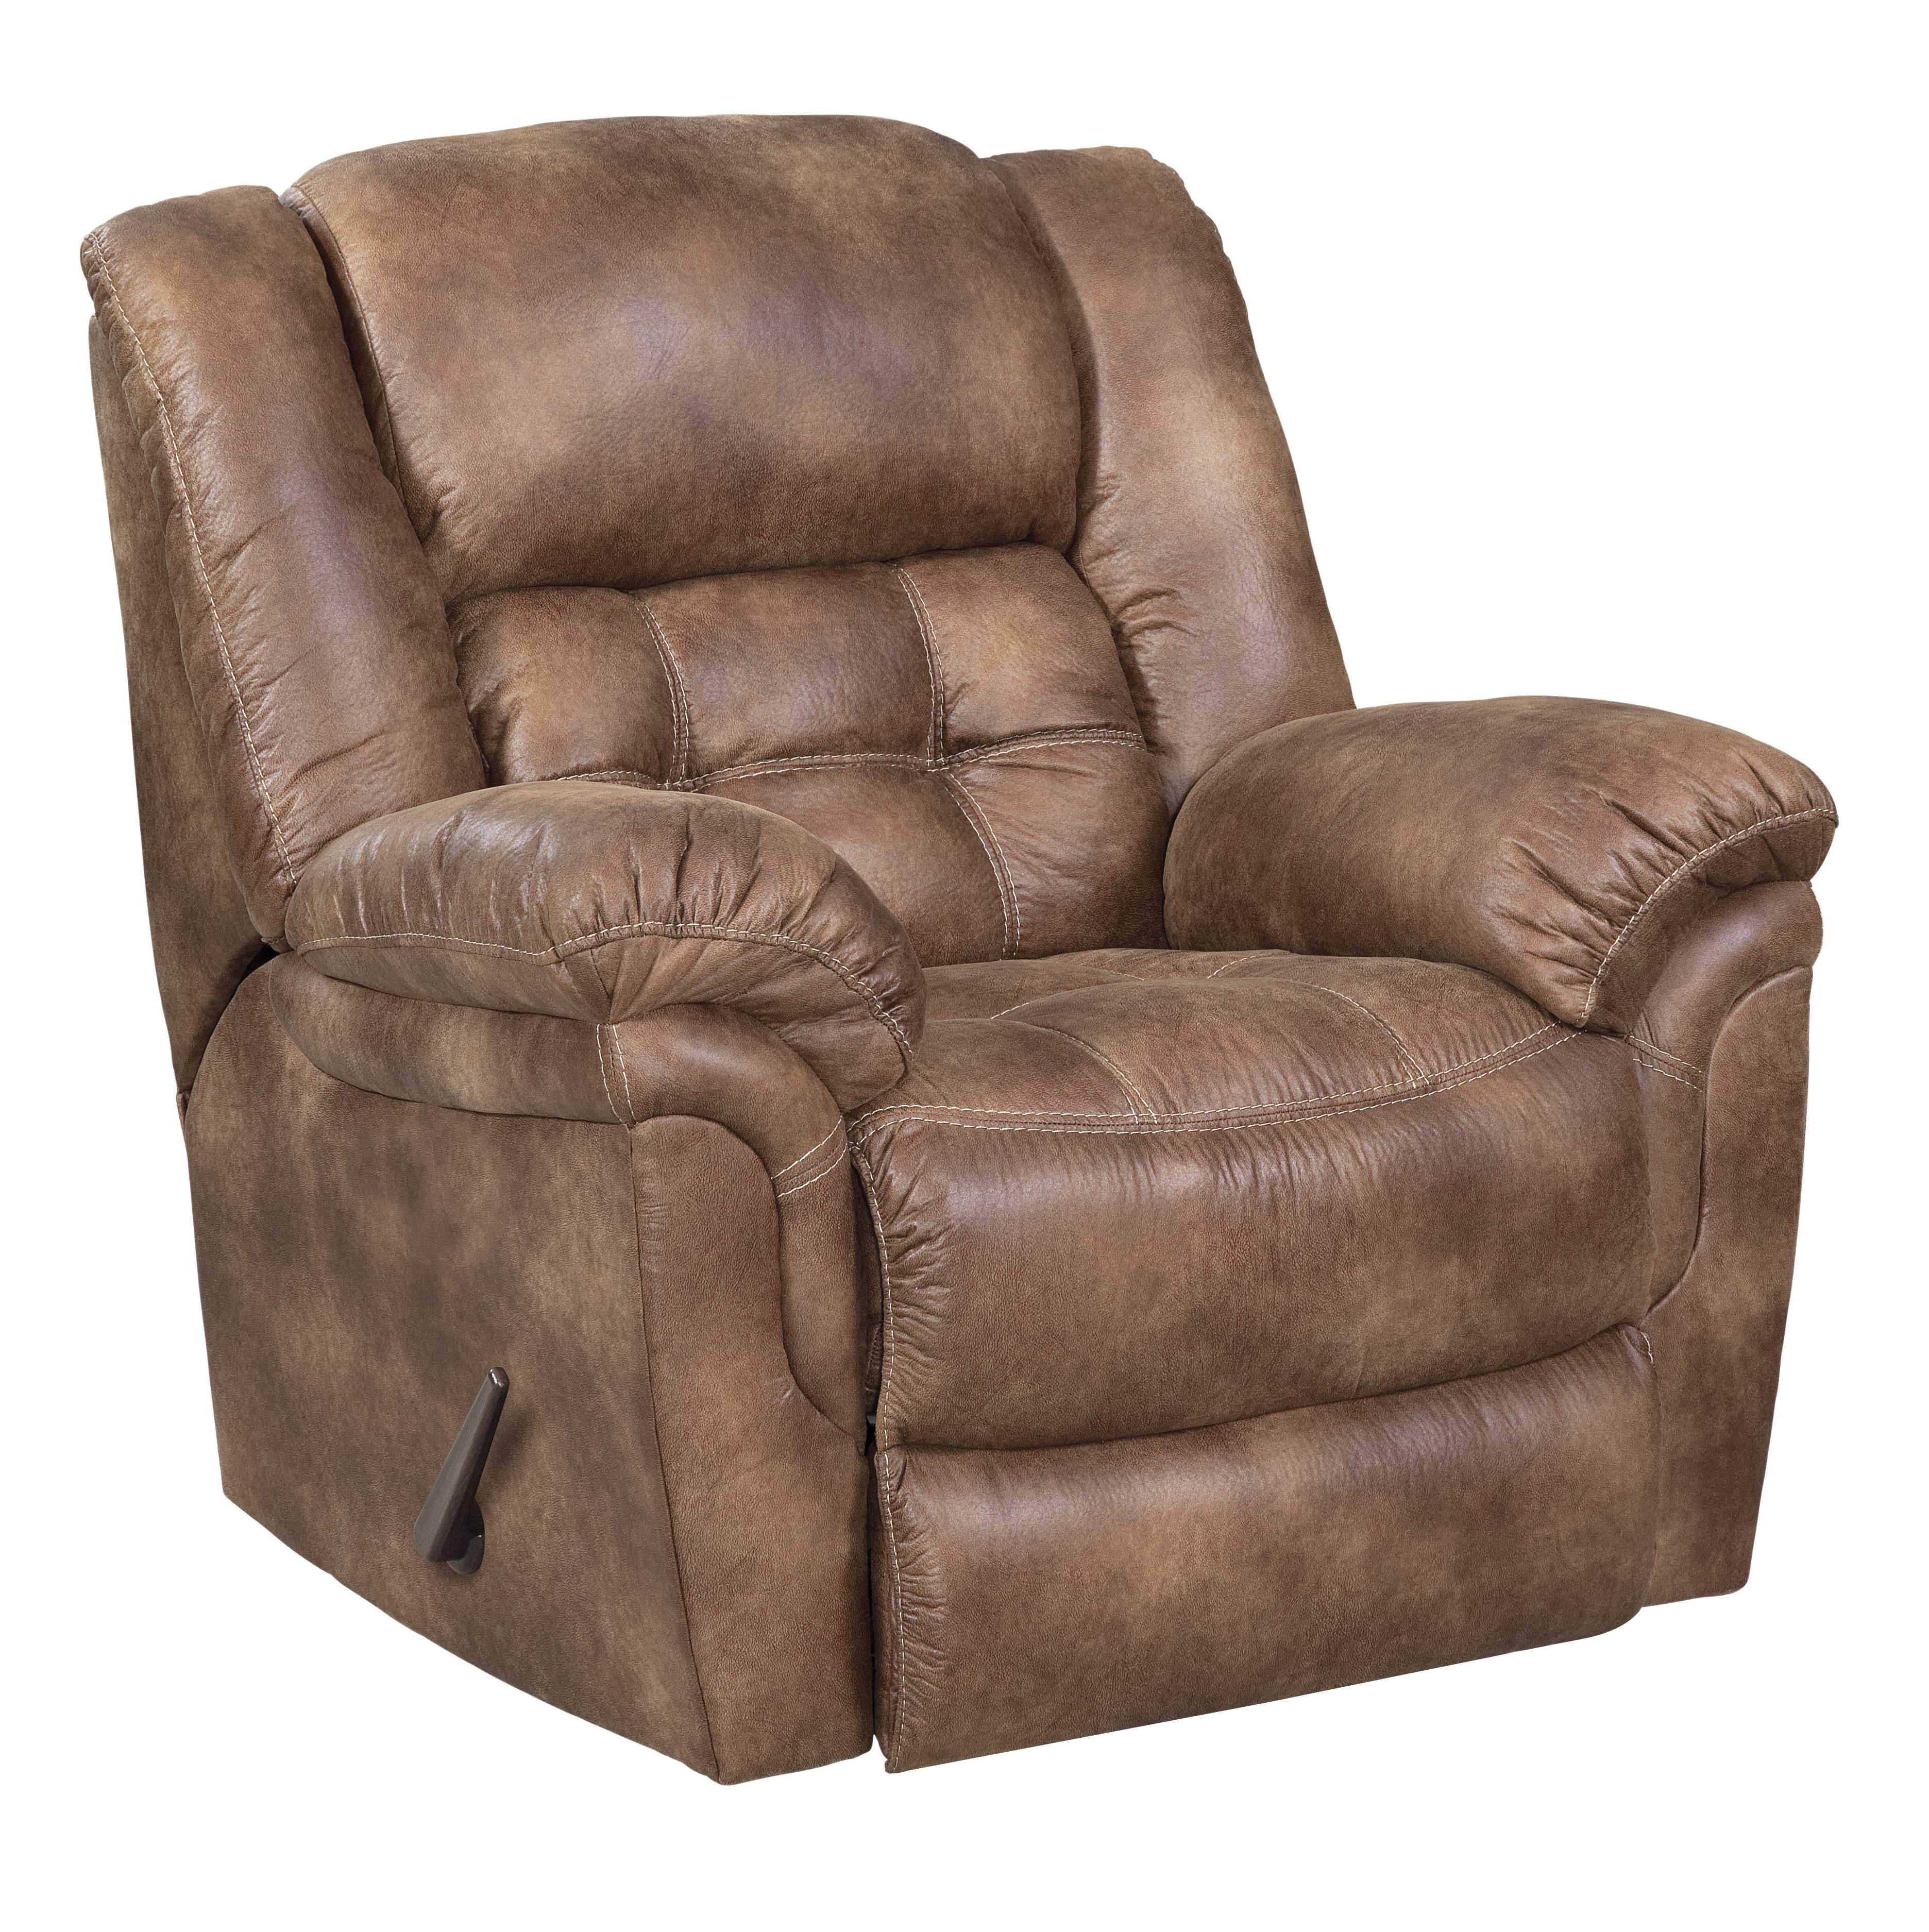 Comfort Living Sierra Rocker Recliner  - Item Number: 129-91-15